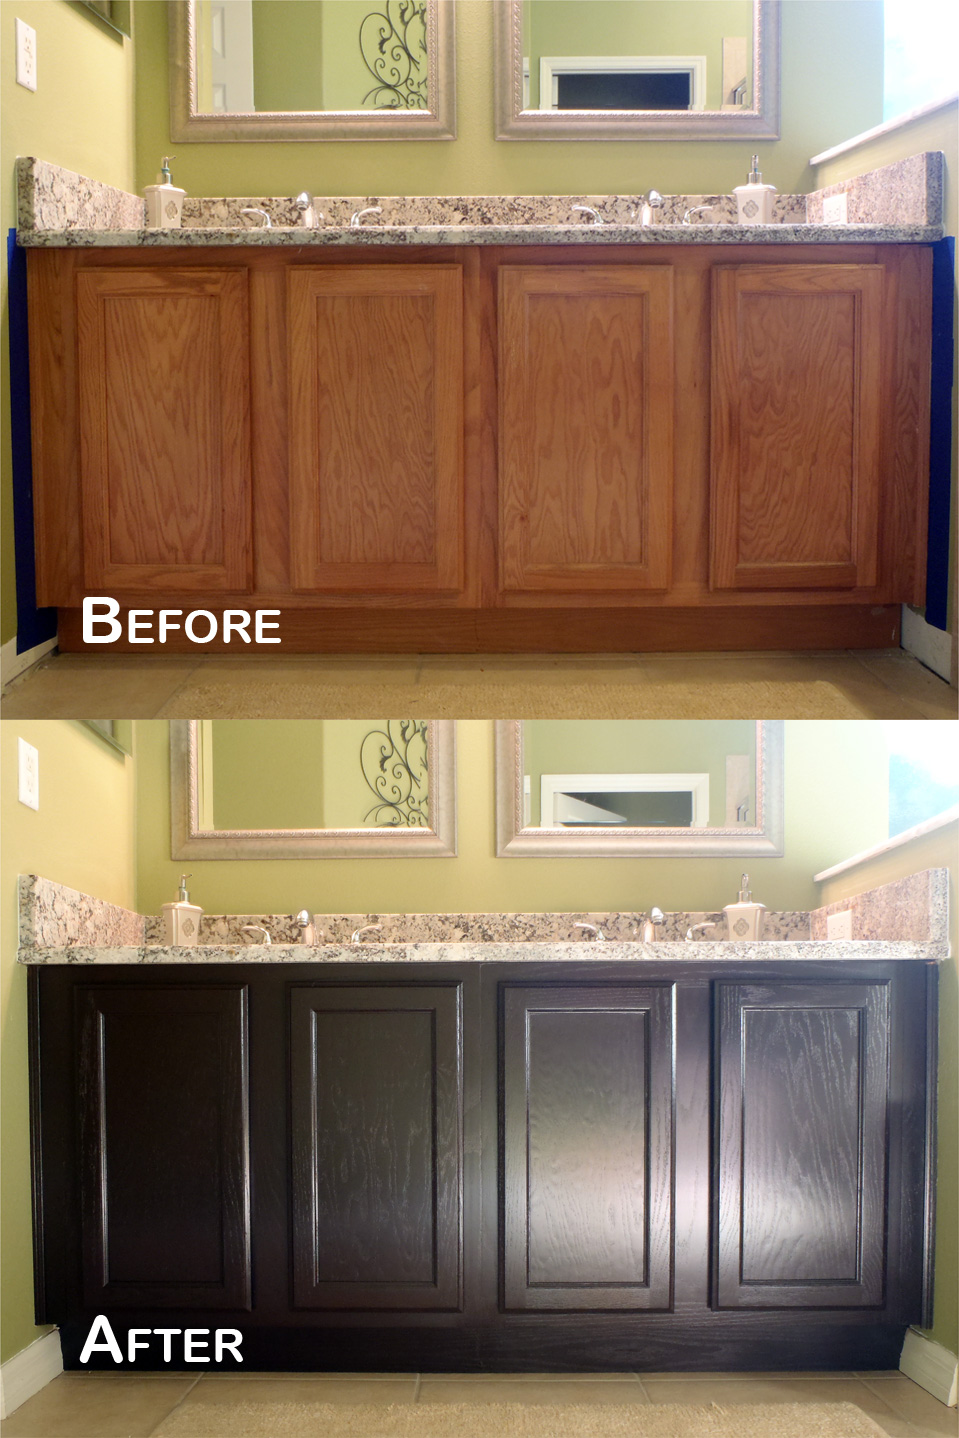 makeover bathroom cabinet using minwax gel stain to get prettier look